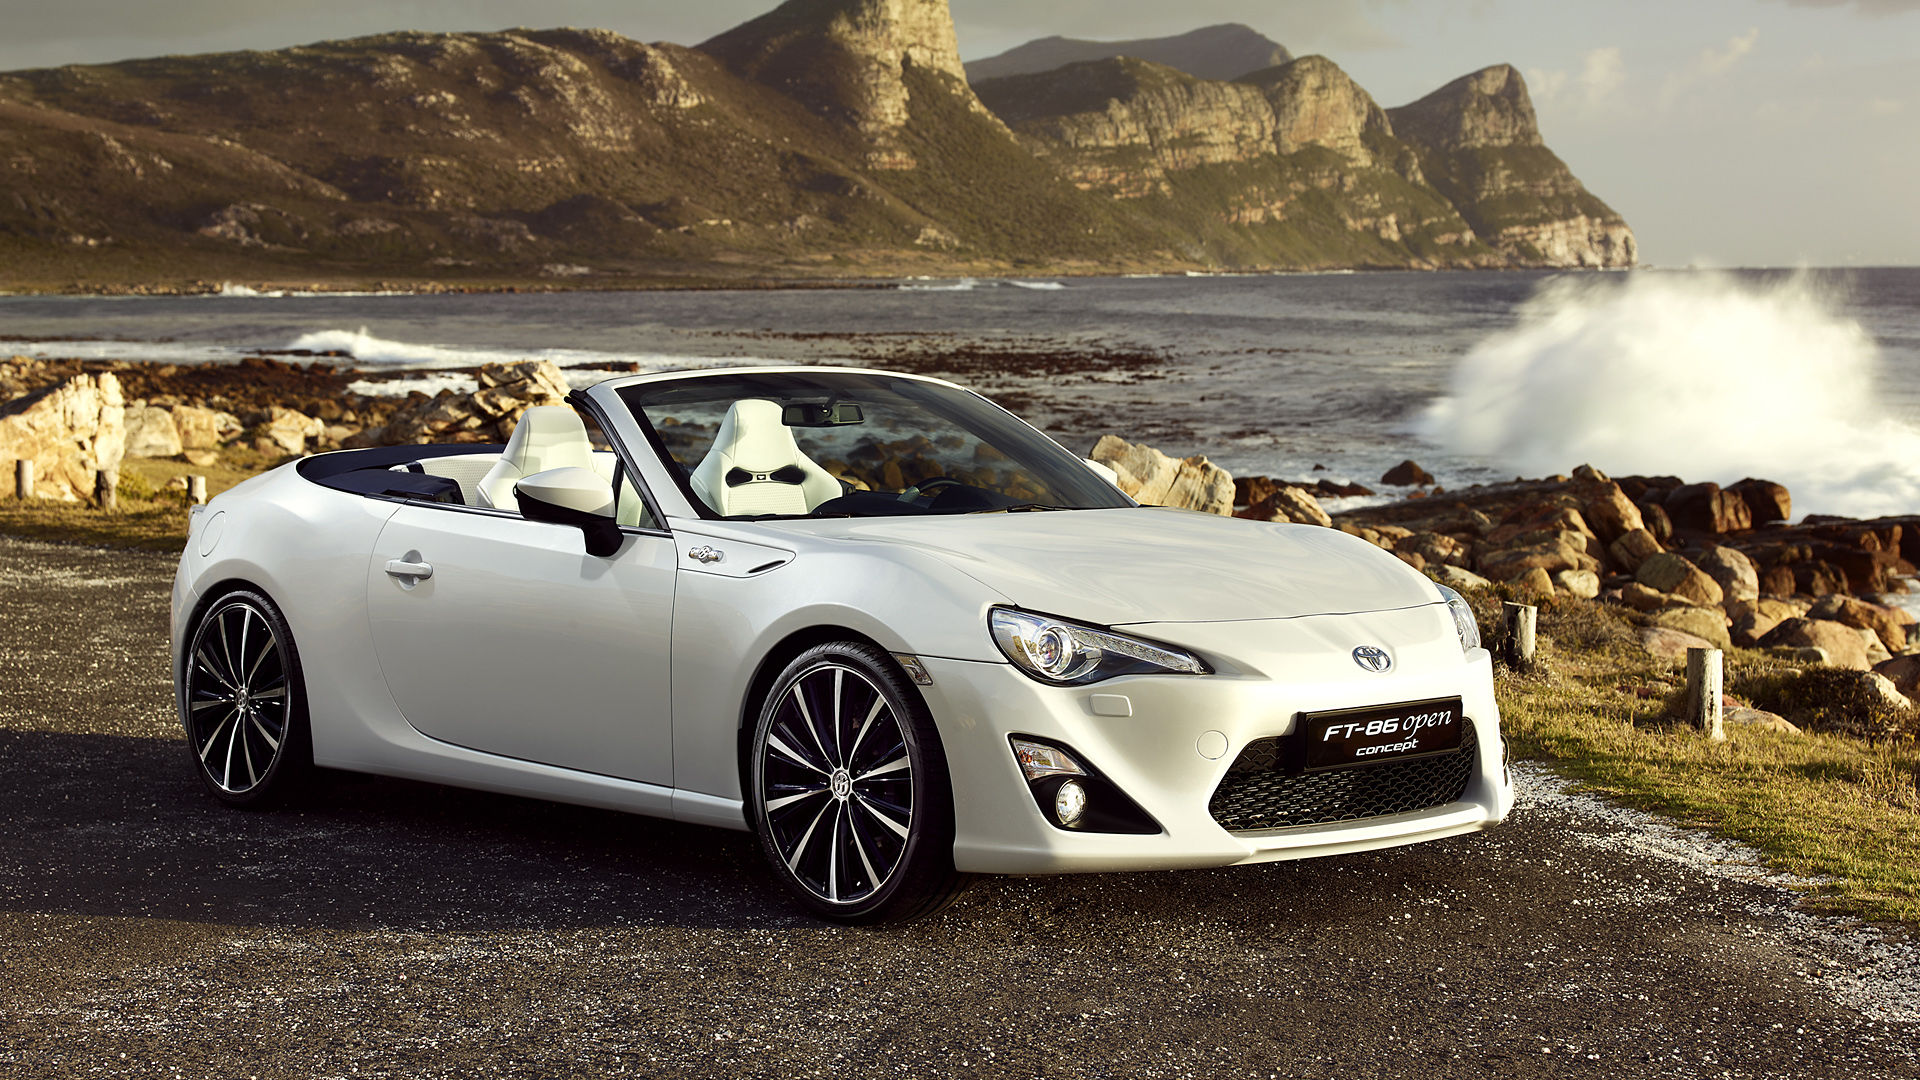 2013 Toyota FT 86 Open Concept